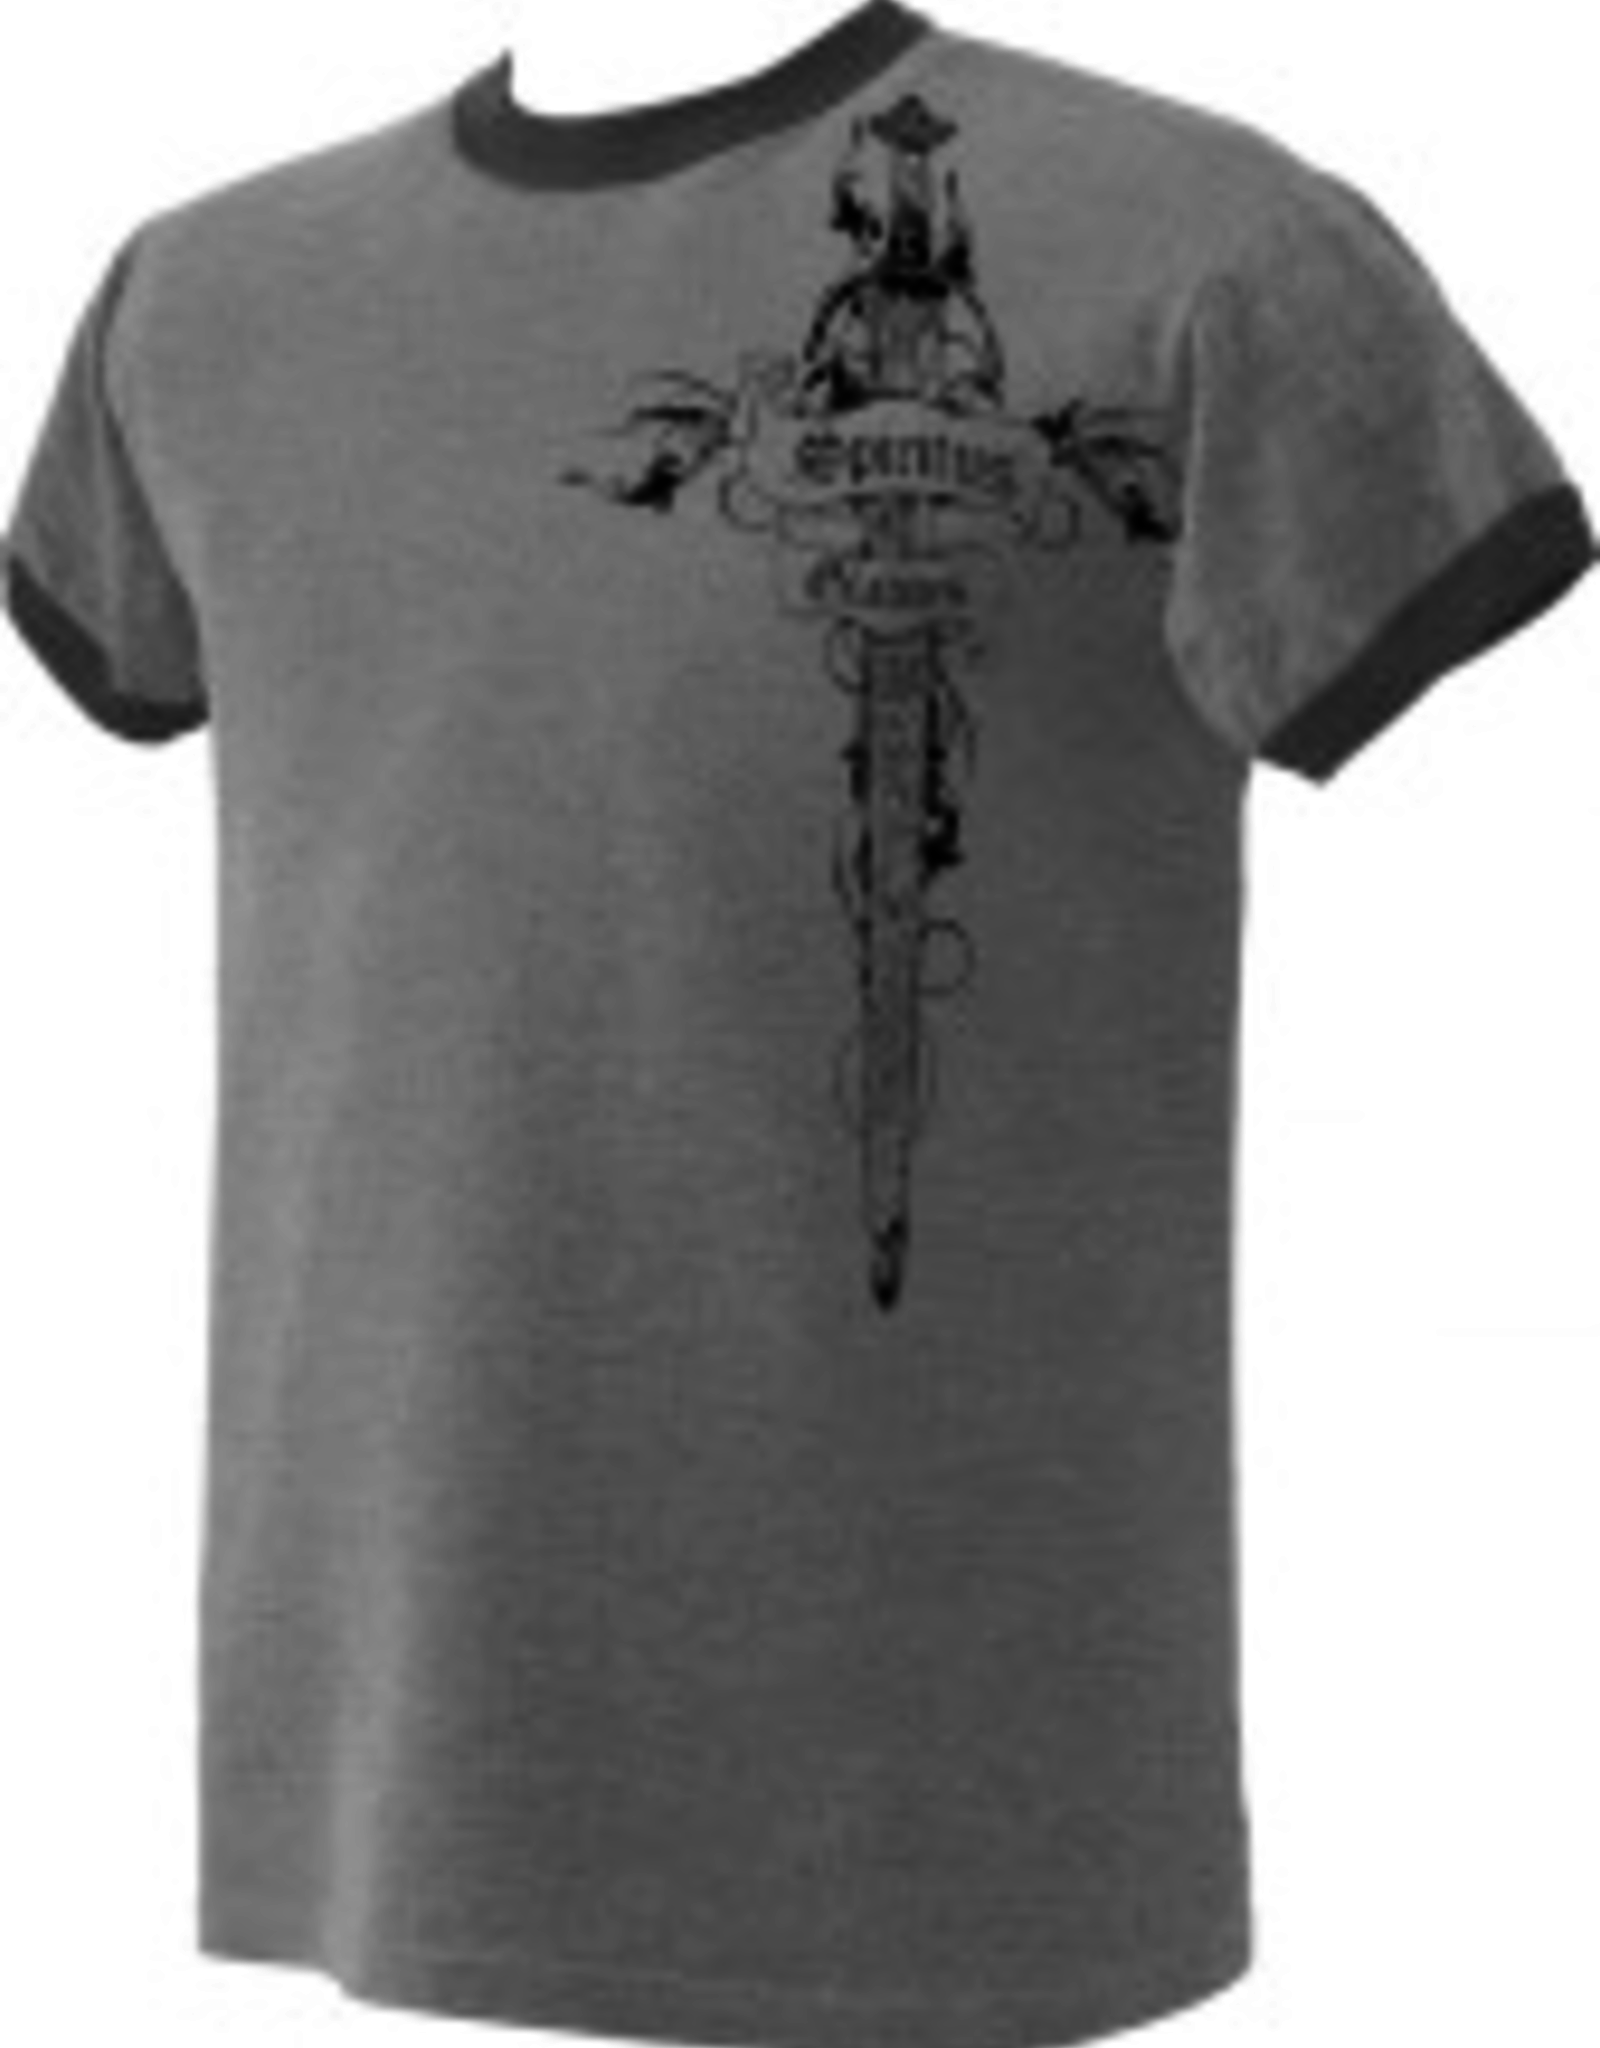 Nelson/Catholic to the Max Spiritus Gladius Ringer T-Shirt